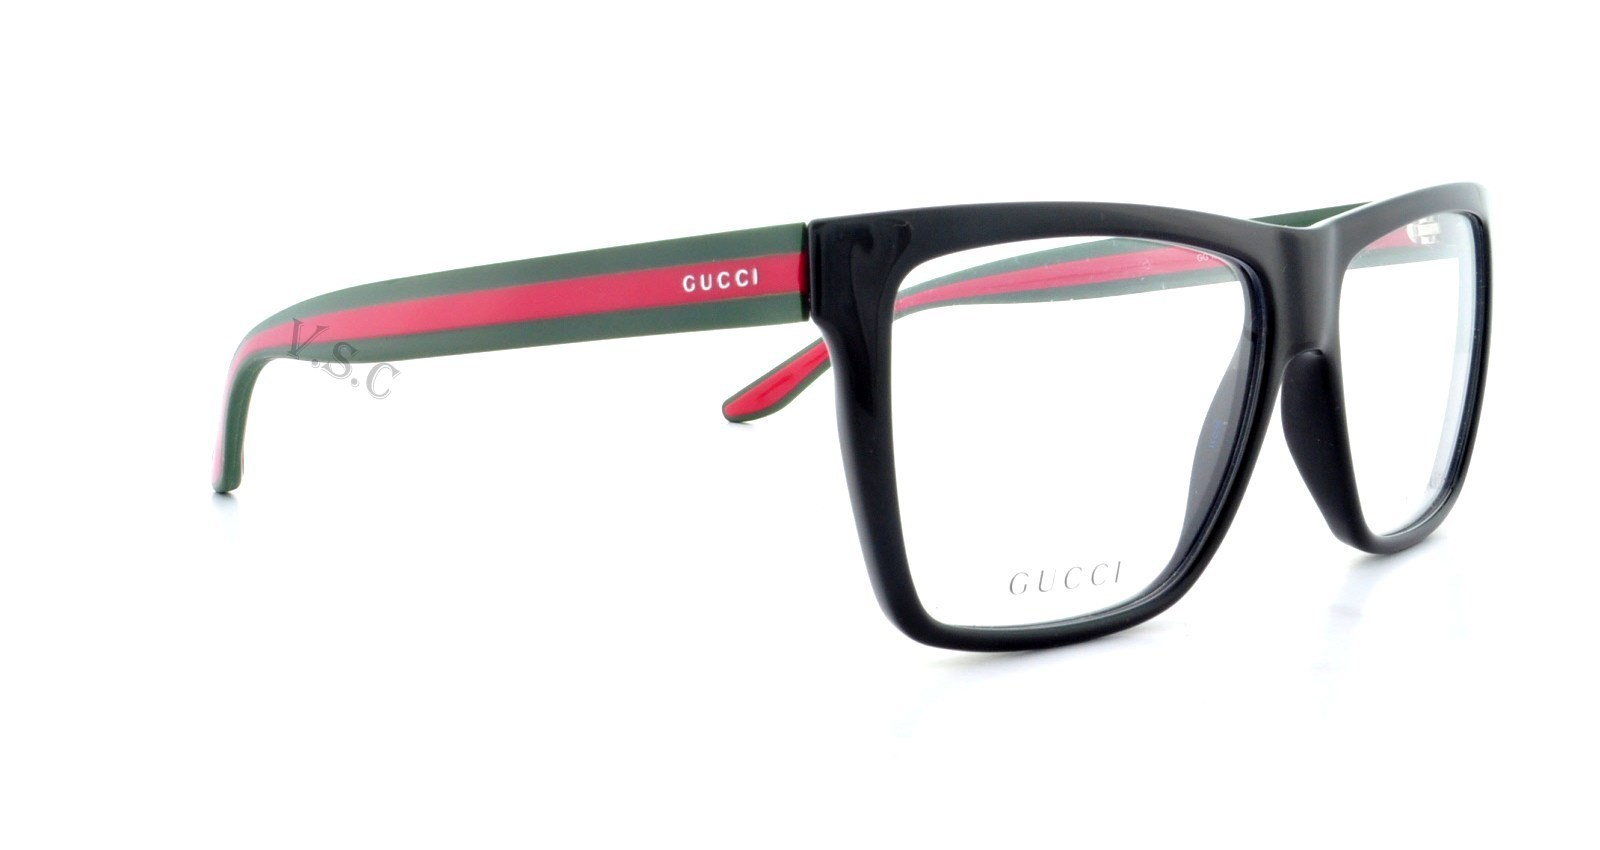 gucci 1008 eyeglasses gg eye glasses 51n shiny black